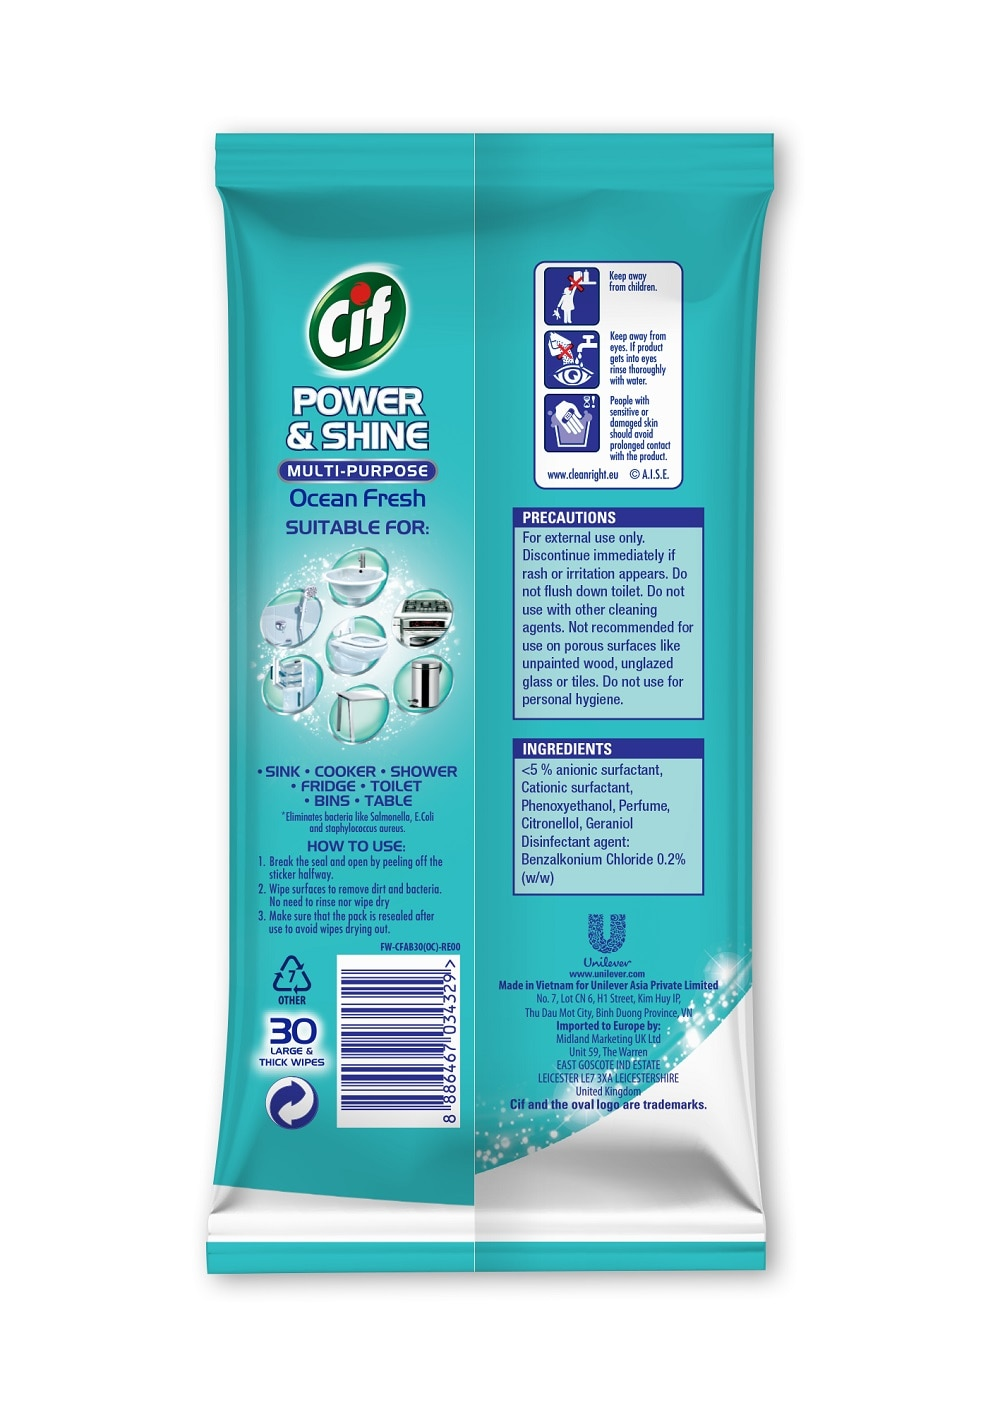 CIFPower & Shine Multi-Purpose Ocean Fresh 30 Sheets,Alcohol and Disinfectant